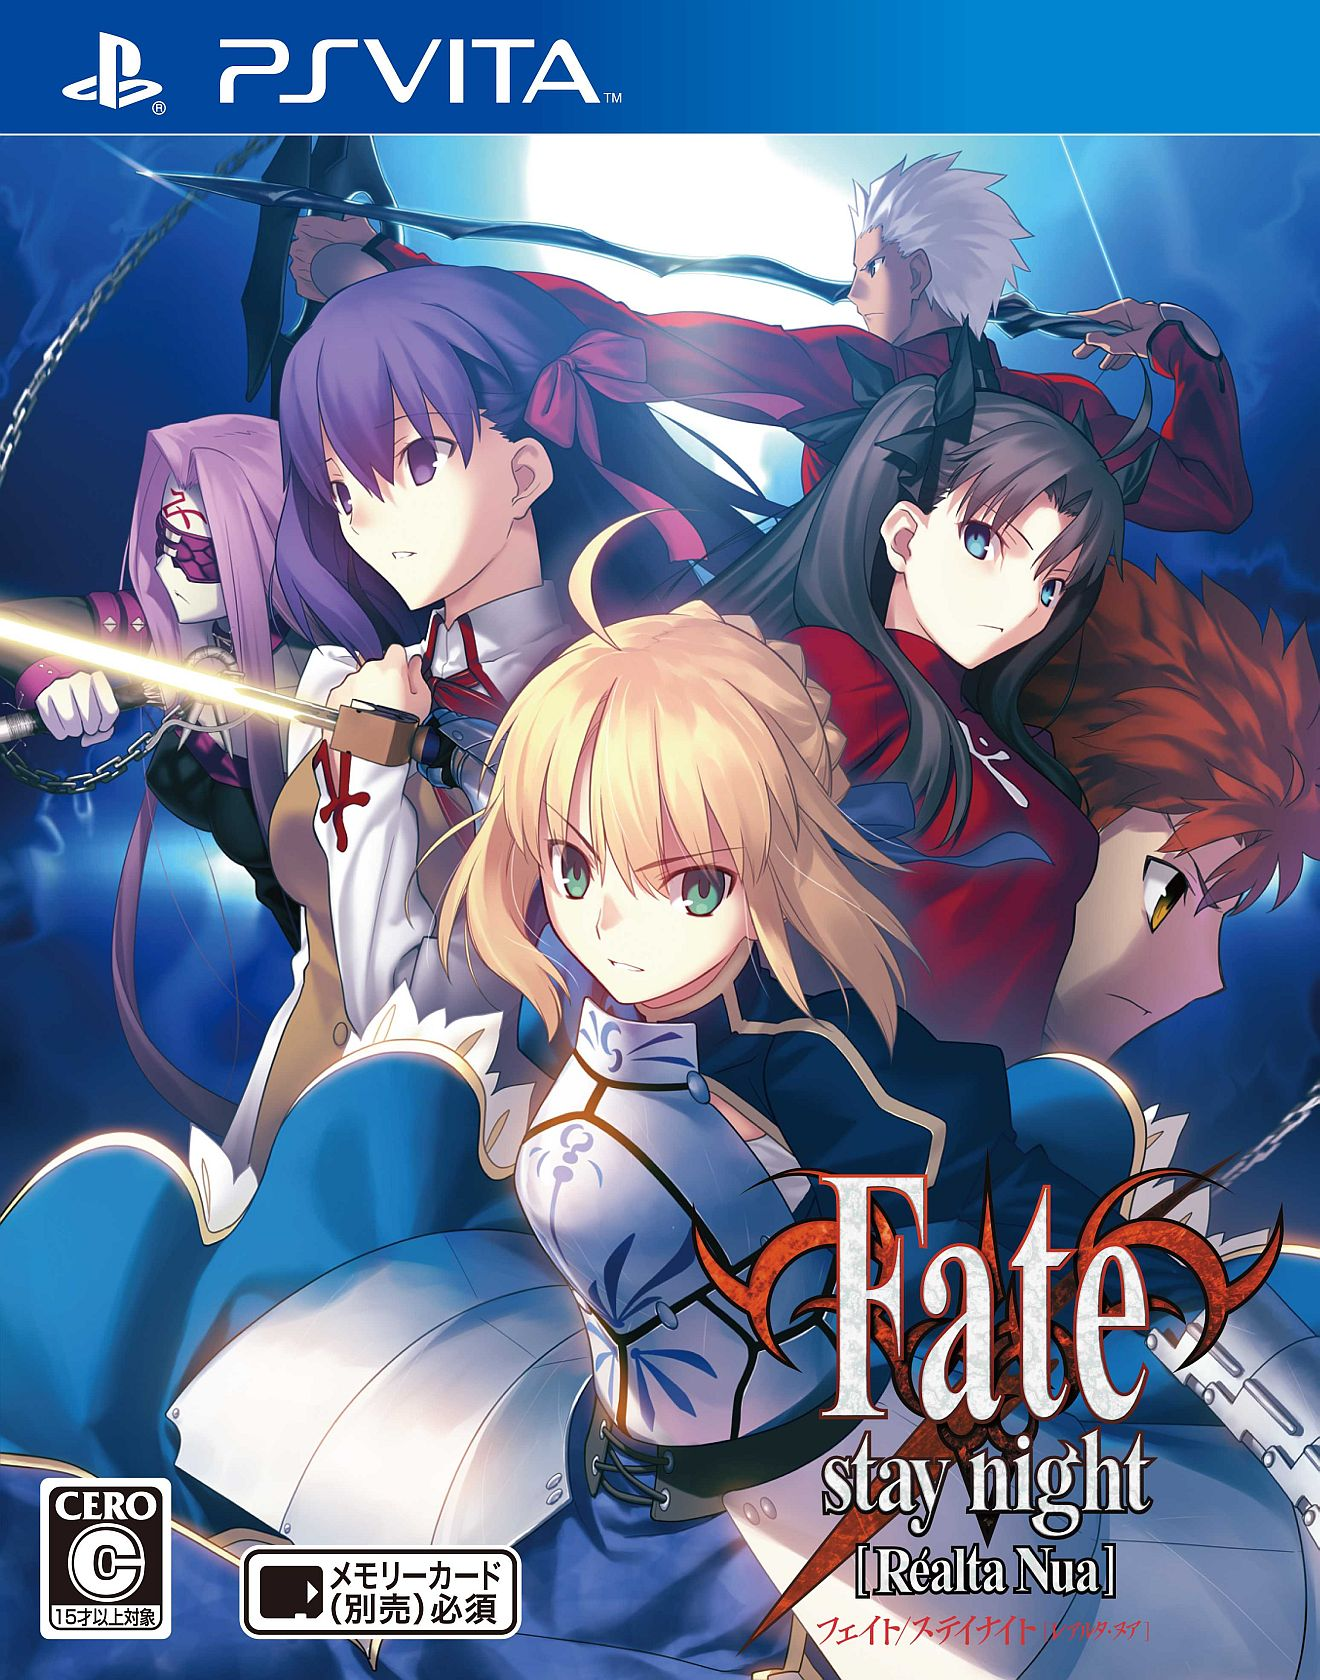 Fate/stay night [Realta Nua] - PC version! - Page 18